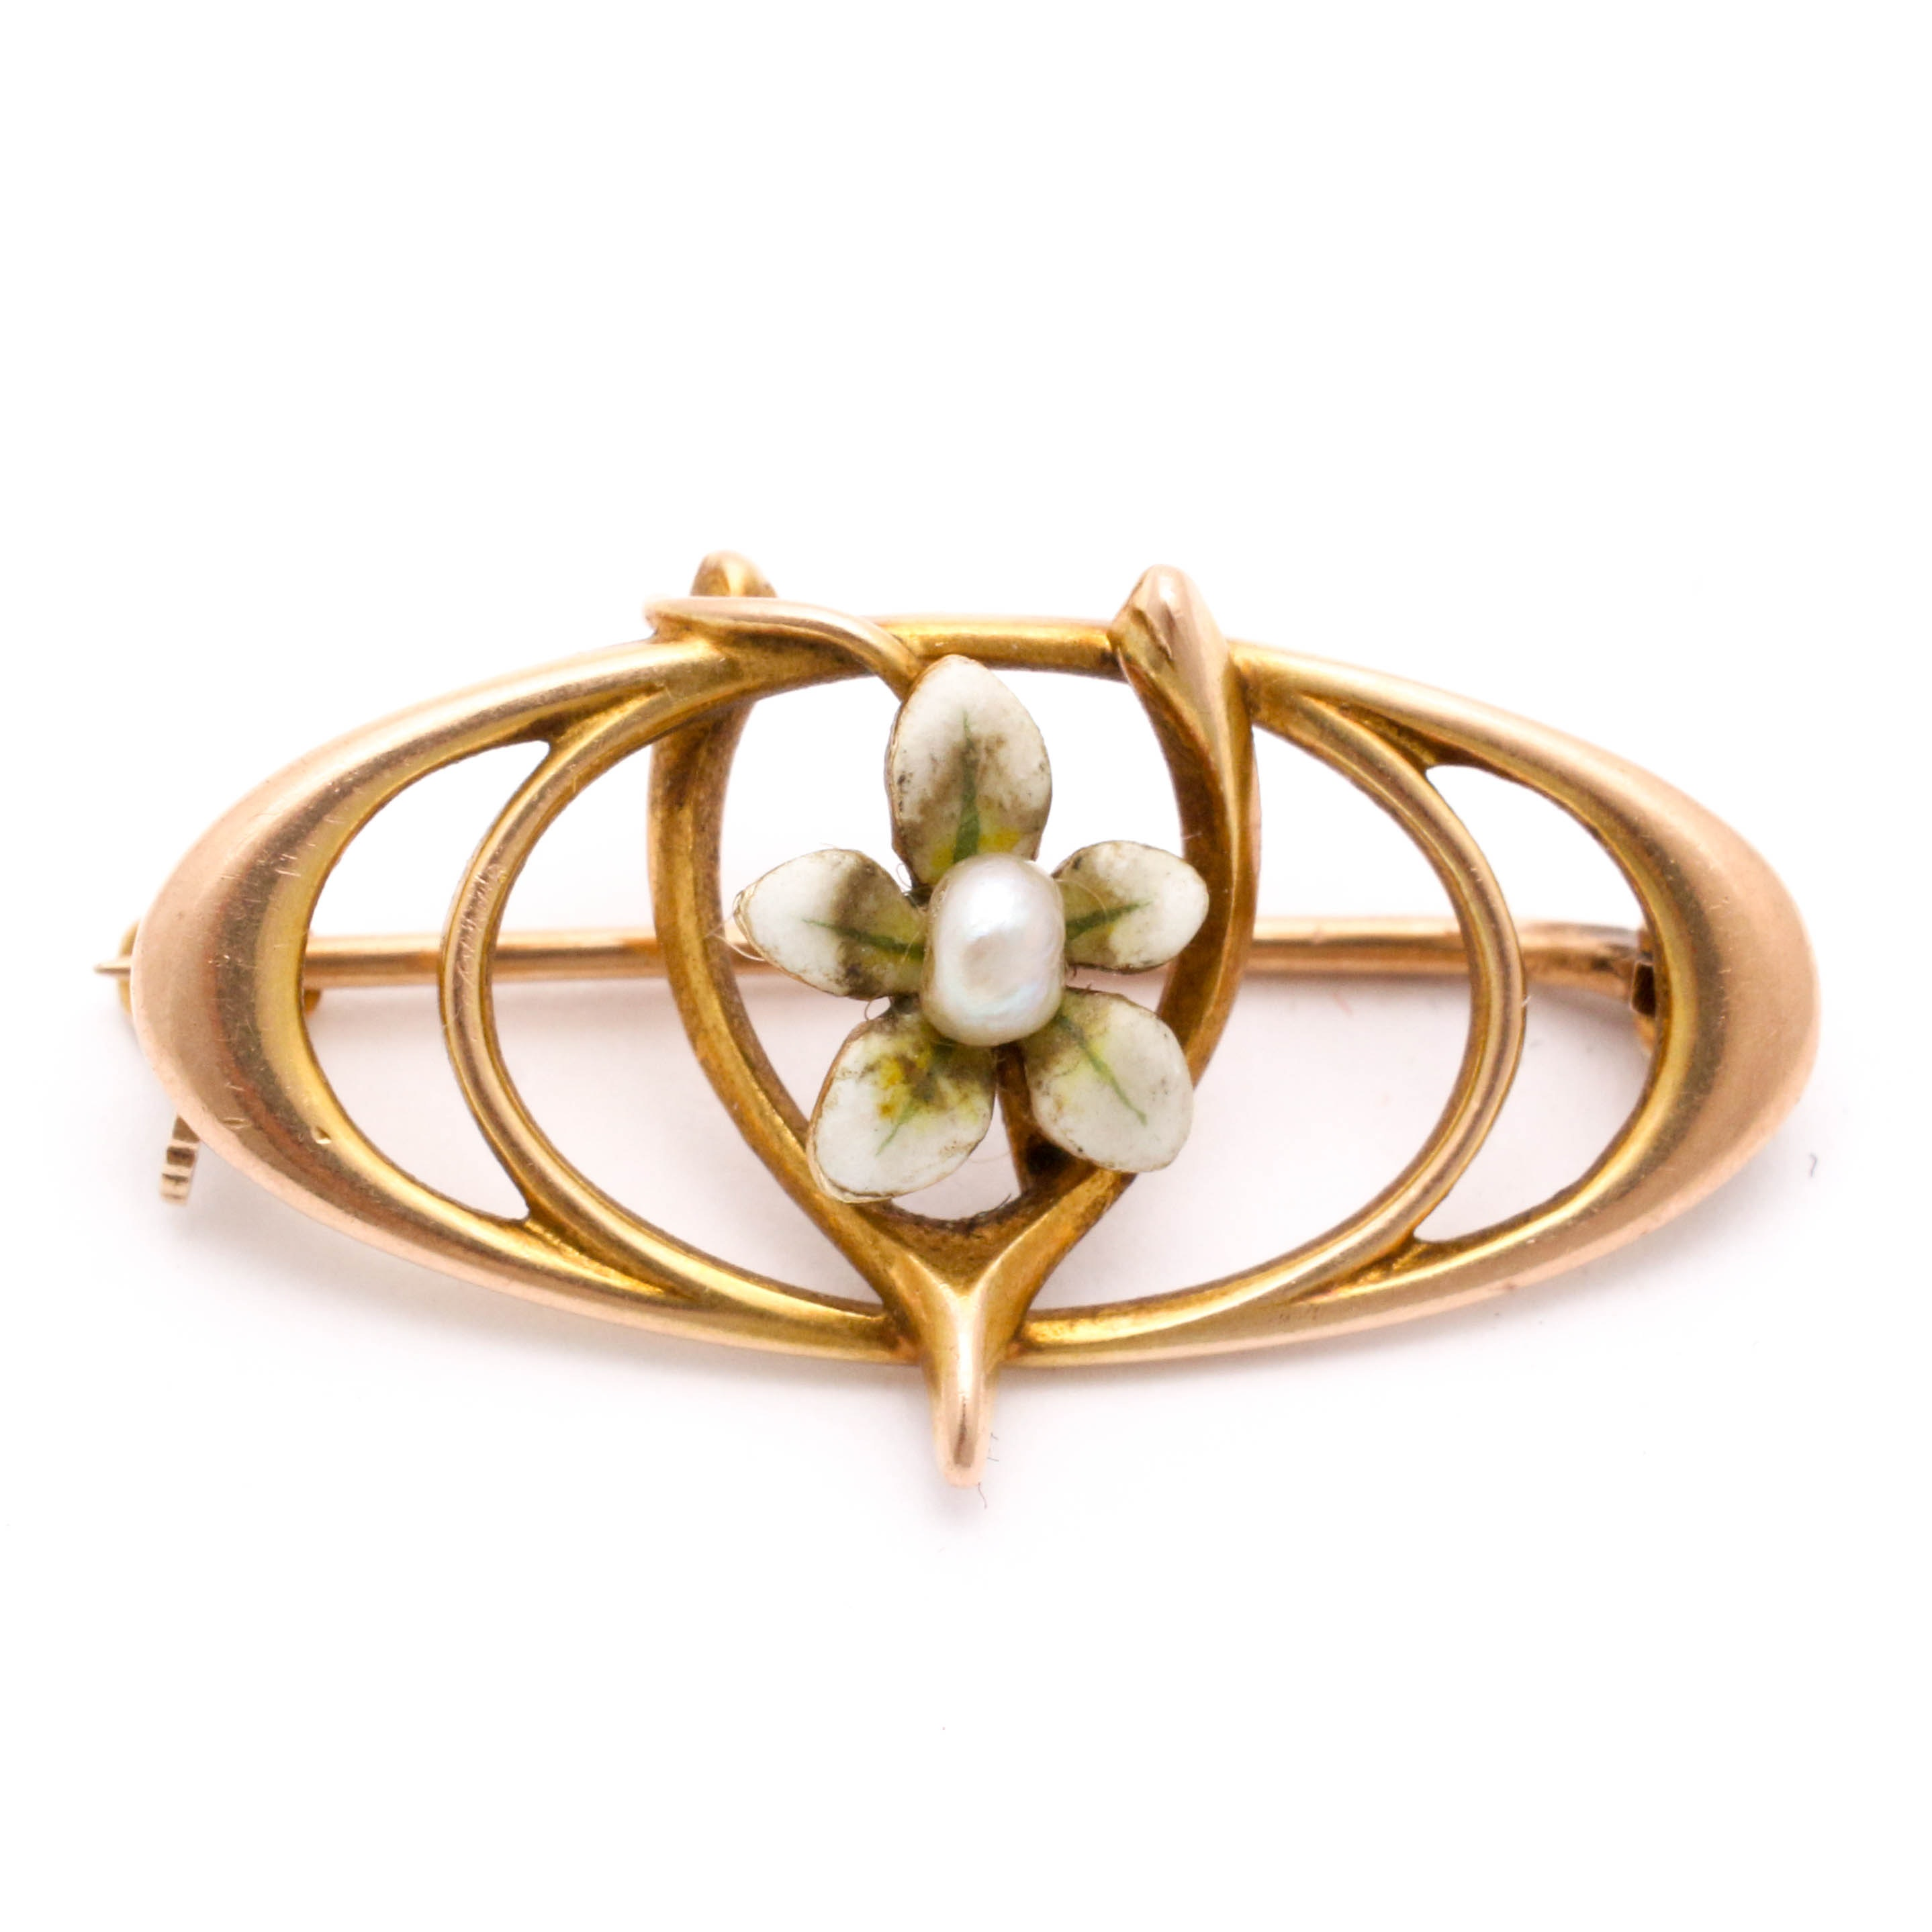 10K Yellow Gold Seed Pearl Enameled Flower and Wishbone Motif Brooch, Antique